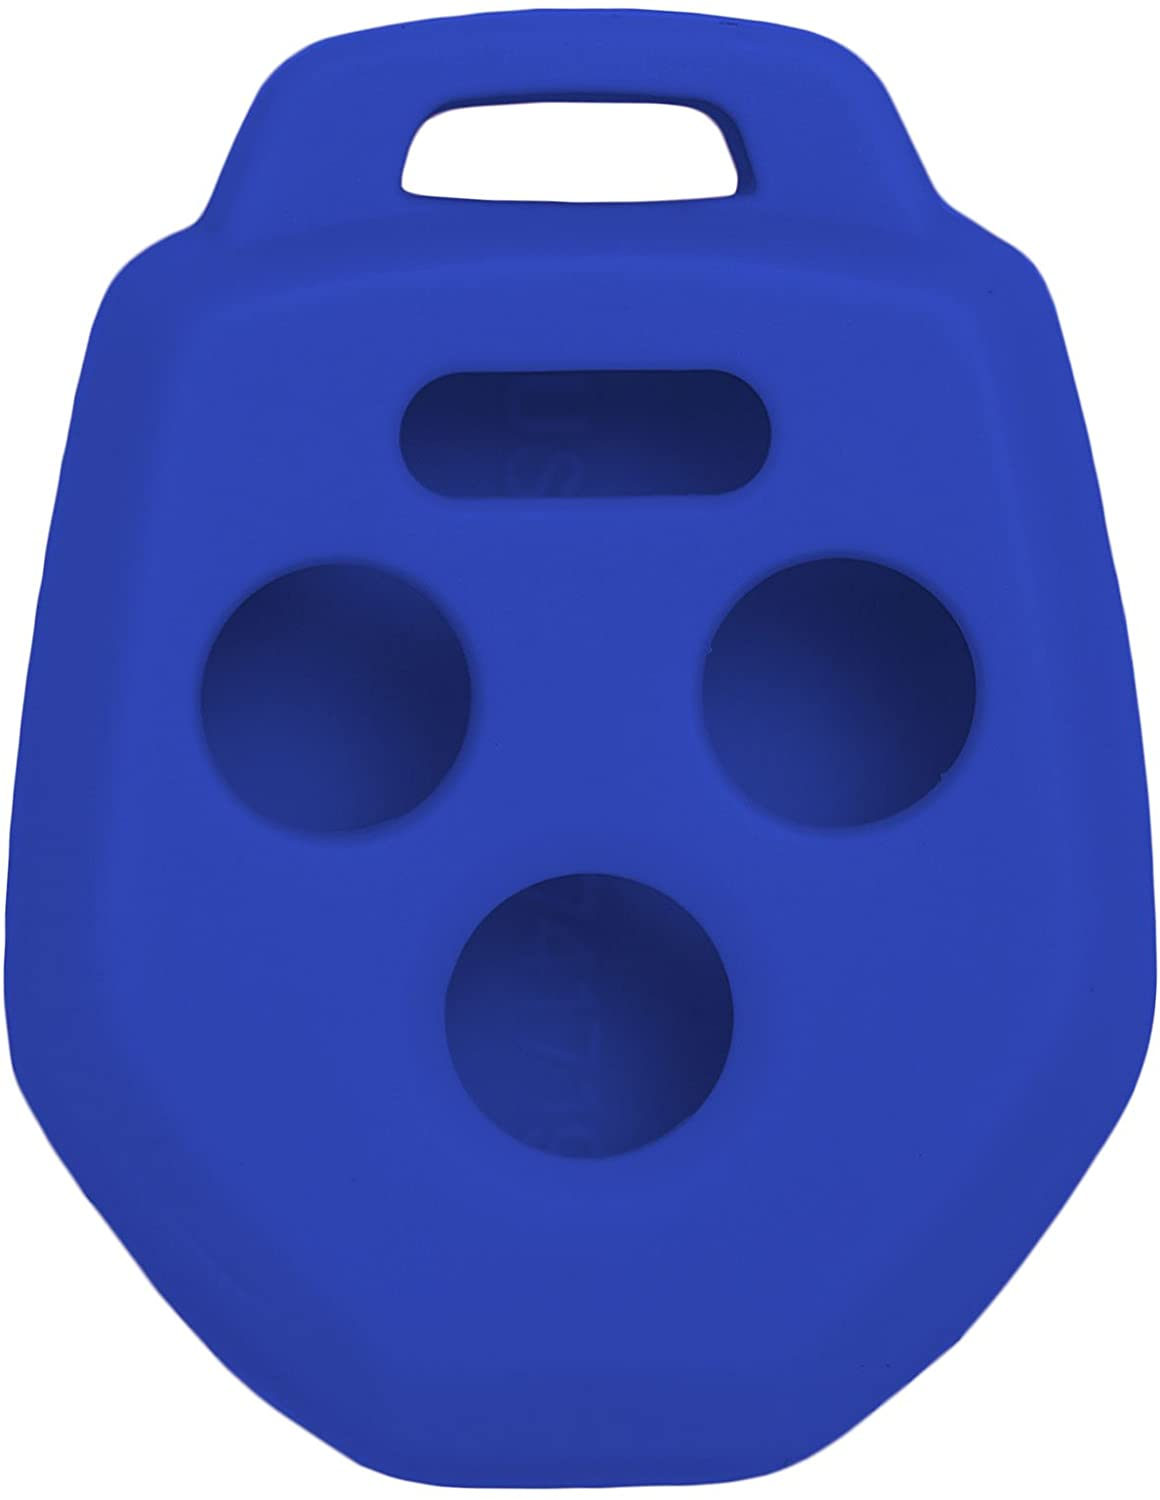 Keyless2Go New Silicone Cover Protective Case for Remote Key Fobs with FCC CWTWB1U811 - Blue